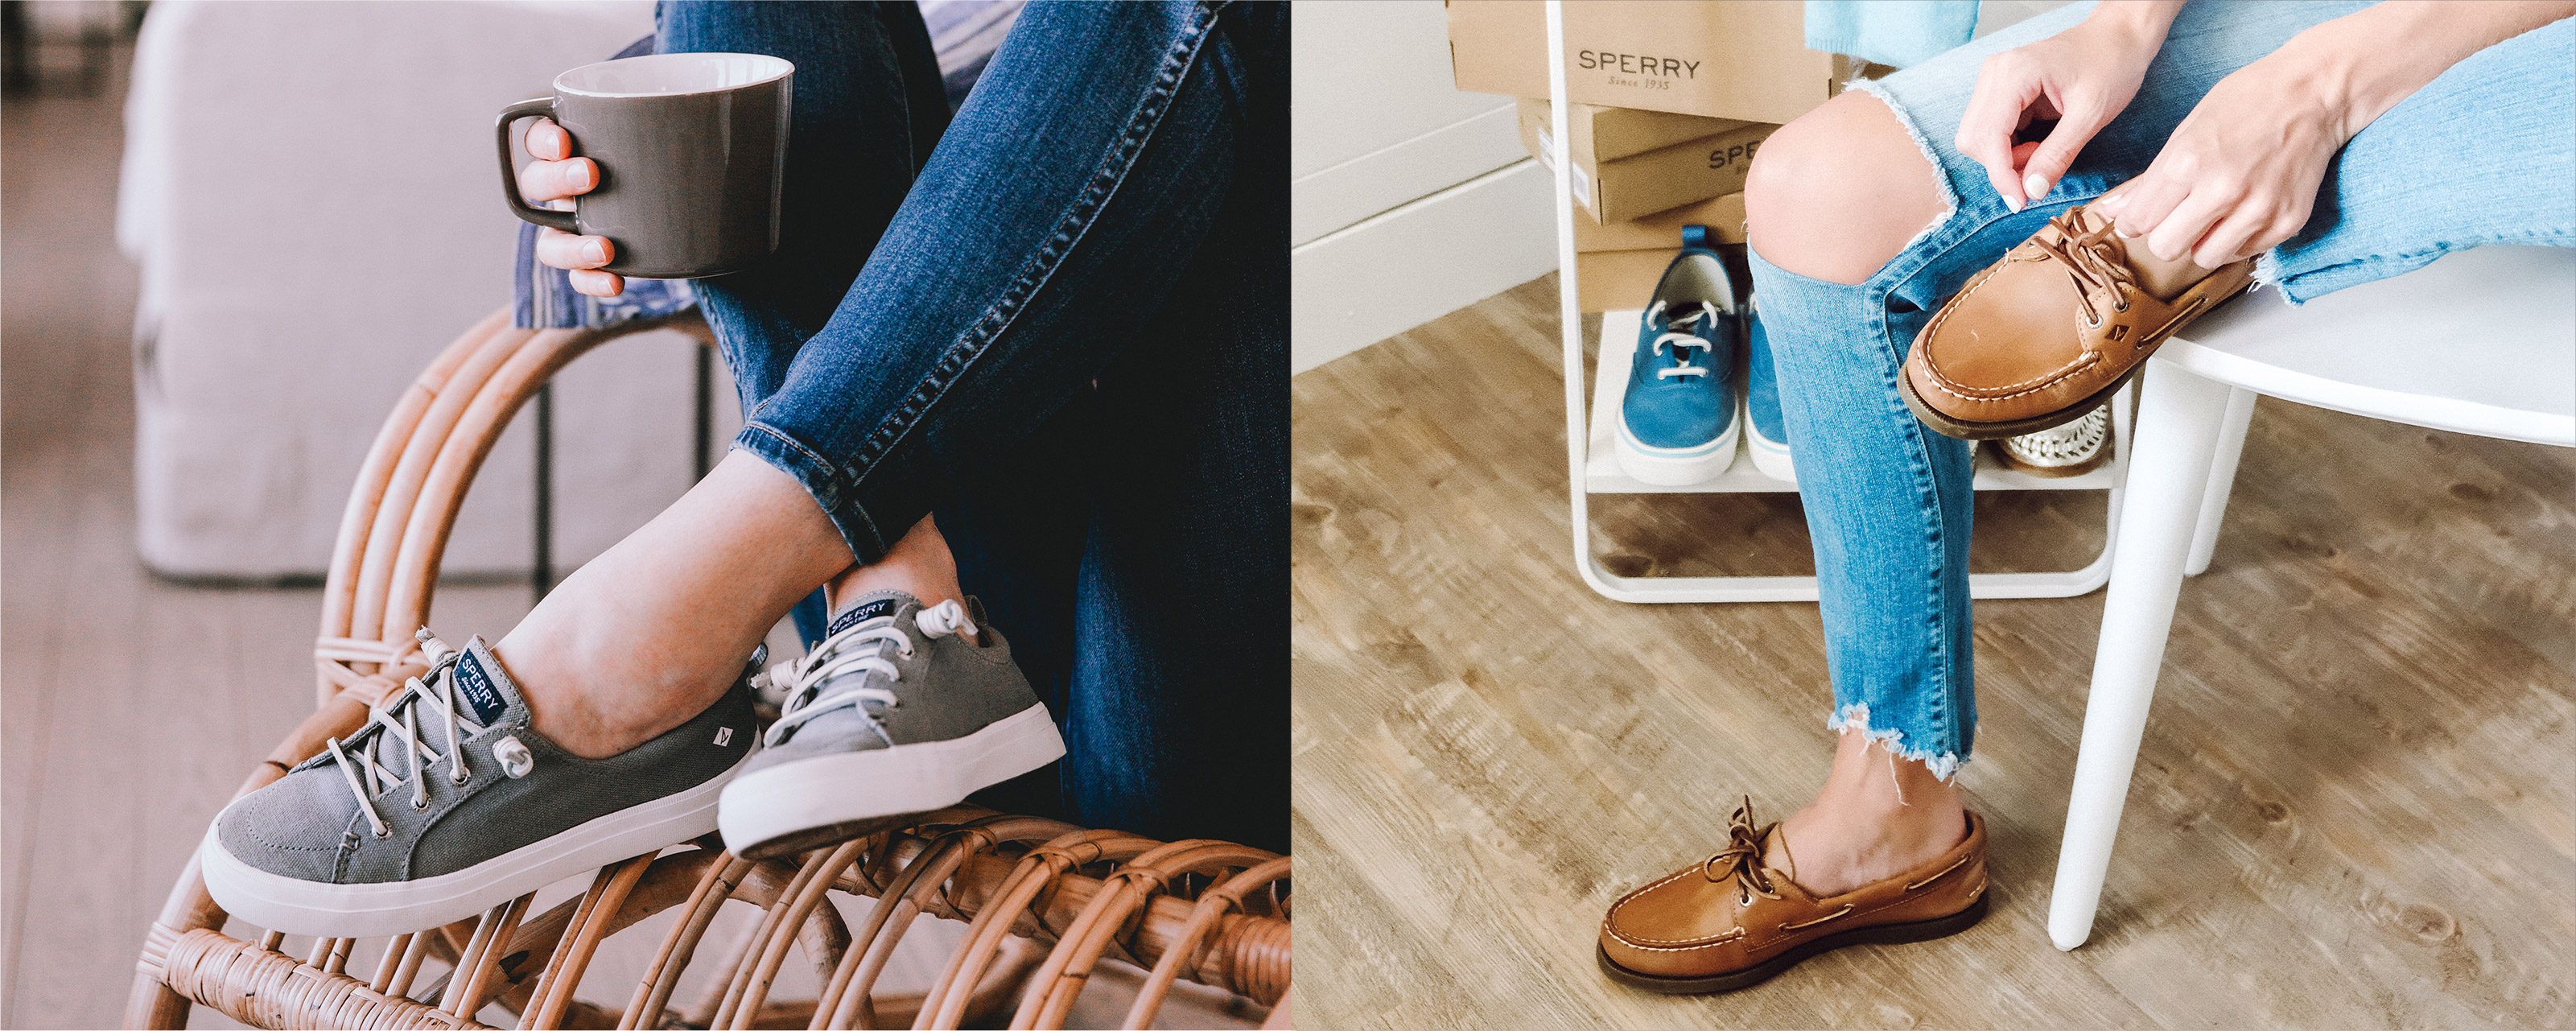 Women's legs crossed with a cup of coffee in her hands, Sperry sneakers on her feet.